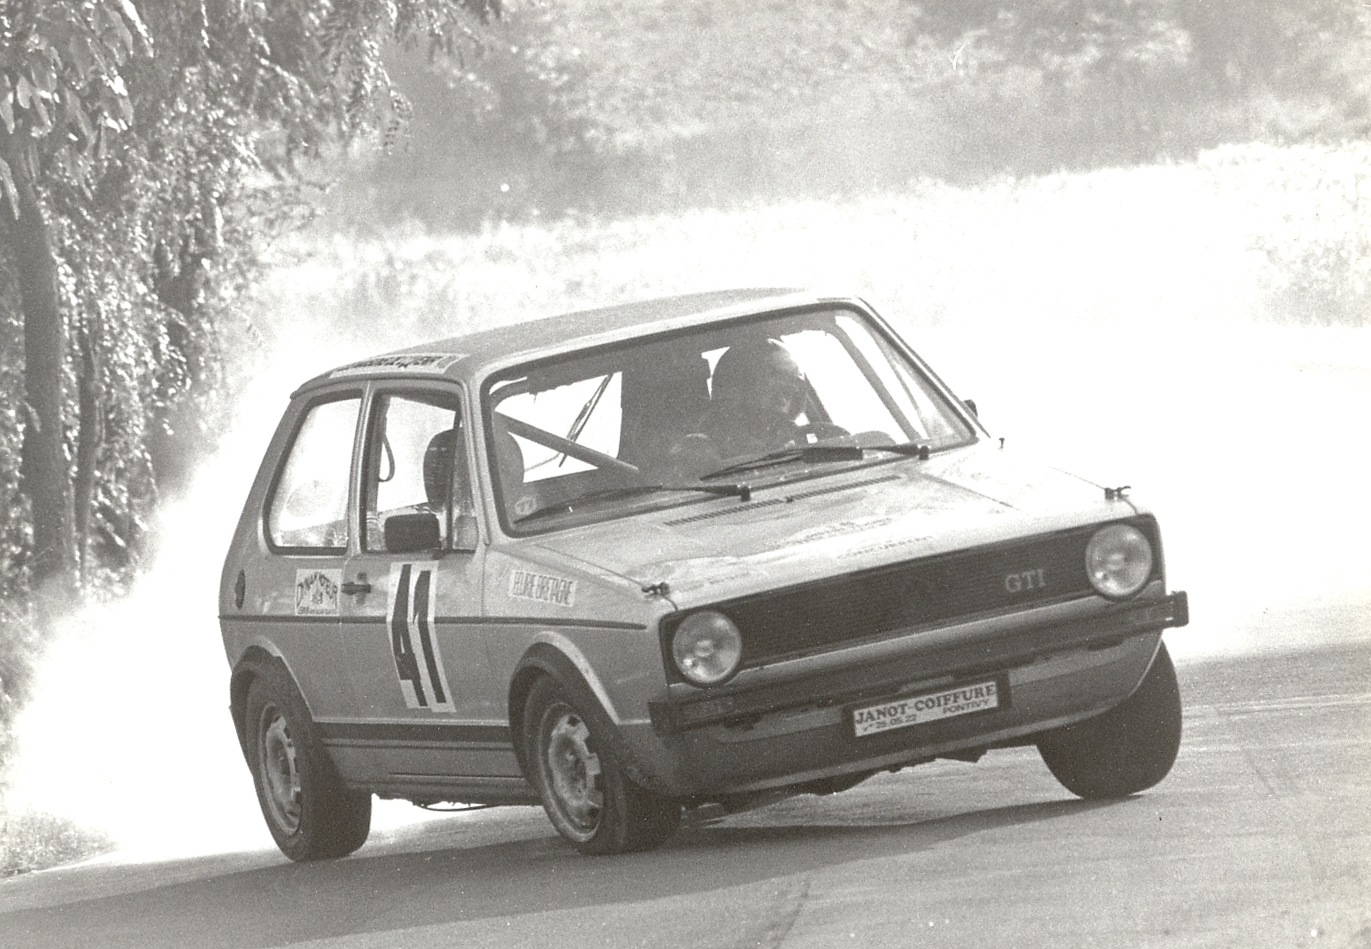 Thierry Le Bras - VW Golf GTI - 1977 - Saumur - Photo Actualité